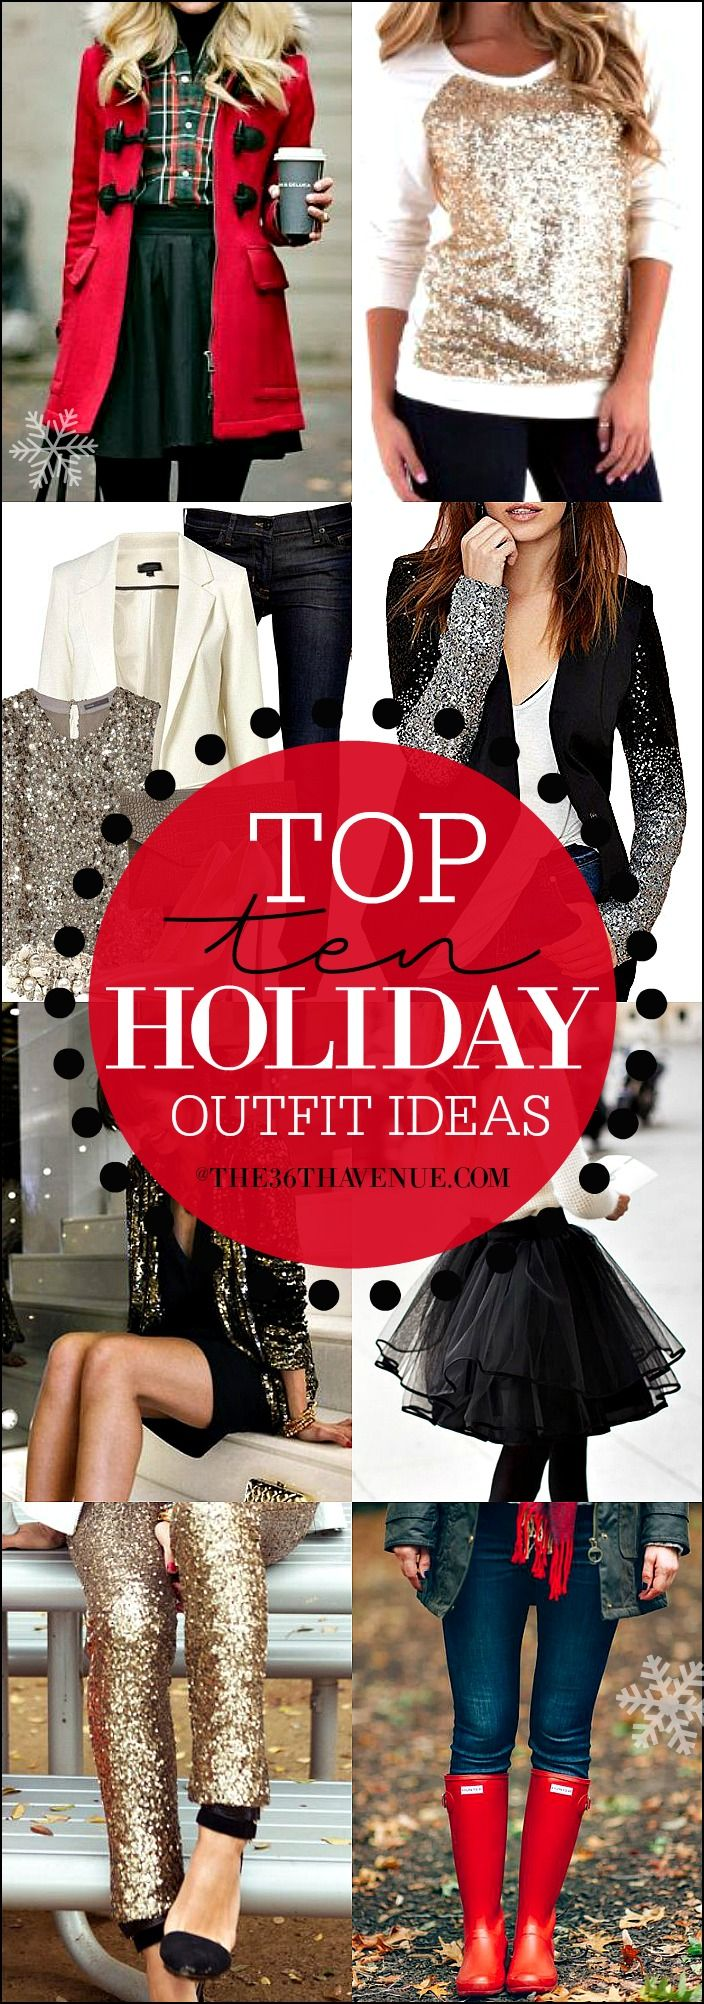 HOLIDAY OUTFIT IDEAS - The Holiday Season is here! Christmas Parties and New Years will be here before we know it! These Top 10 Holiday Outfit Ideas are comfortable, adorable, festive, and super cute. Winter fashion has never looked this fabulous before! PIN IT NOW and wear it later!